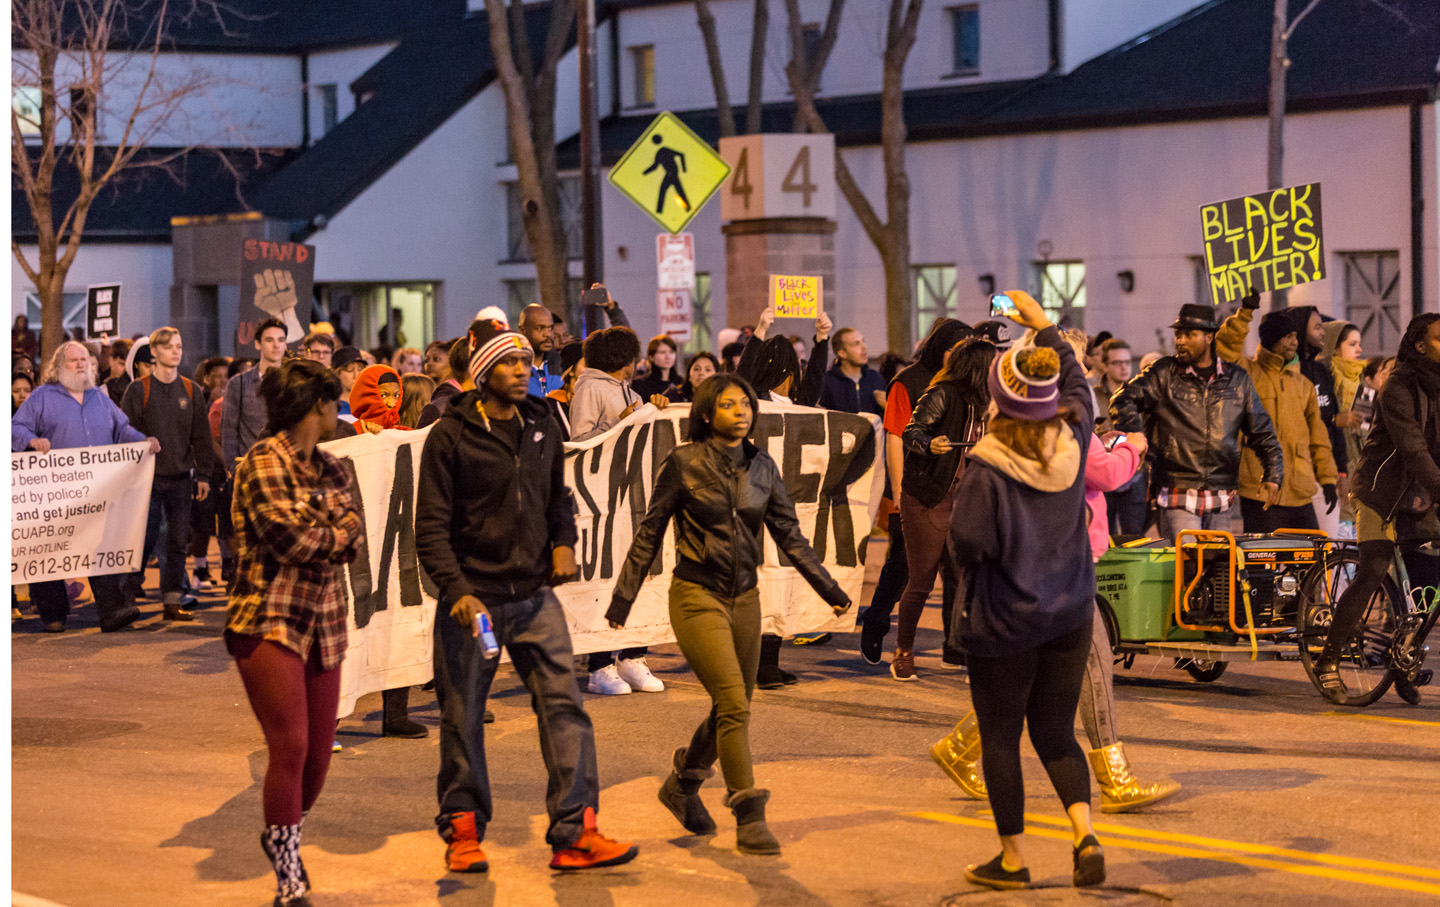 Black Lives Matter activists march along Plymouth Avenue North in front of the 4th Precinct station, toward the Minneapolis Urban League, where Mayor Betsy Hodges and Chief Janee Harteau held a community listening session regarding the officer-involved shooting of Jamar Clark, on November 15, 2015.  Photo: Tony Webster tony@tonywebster.com